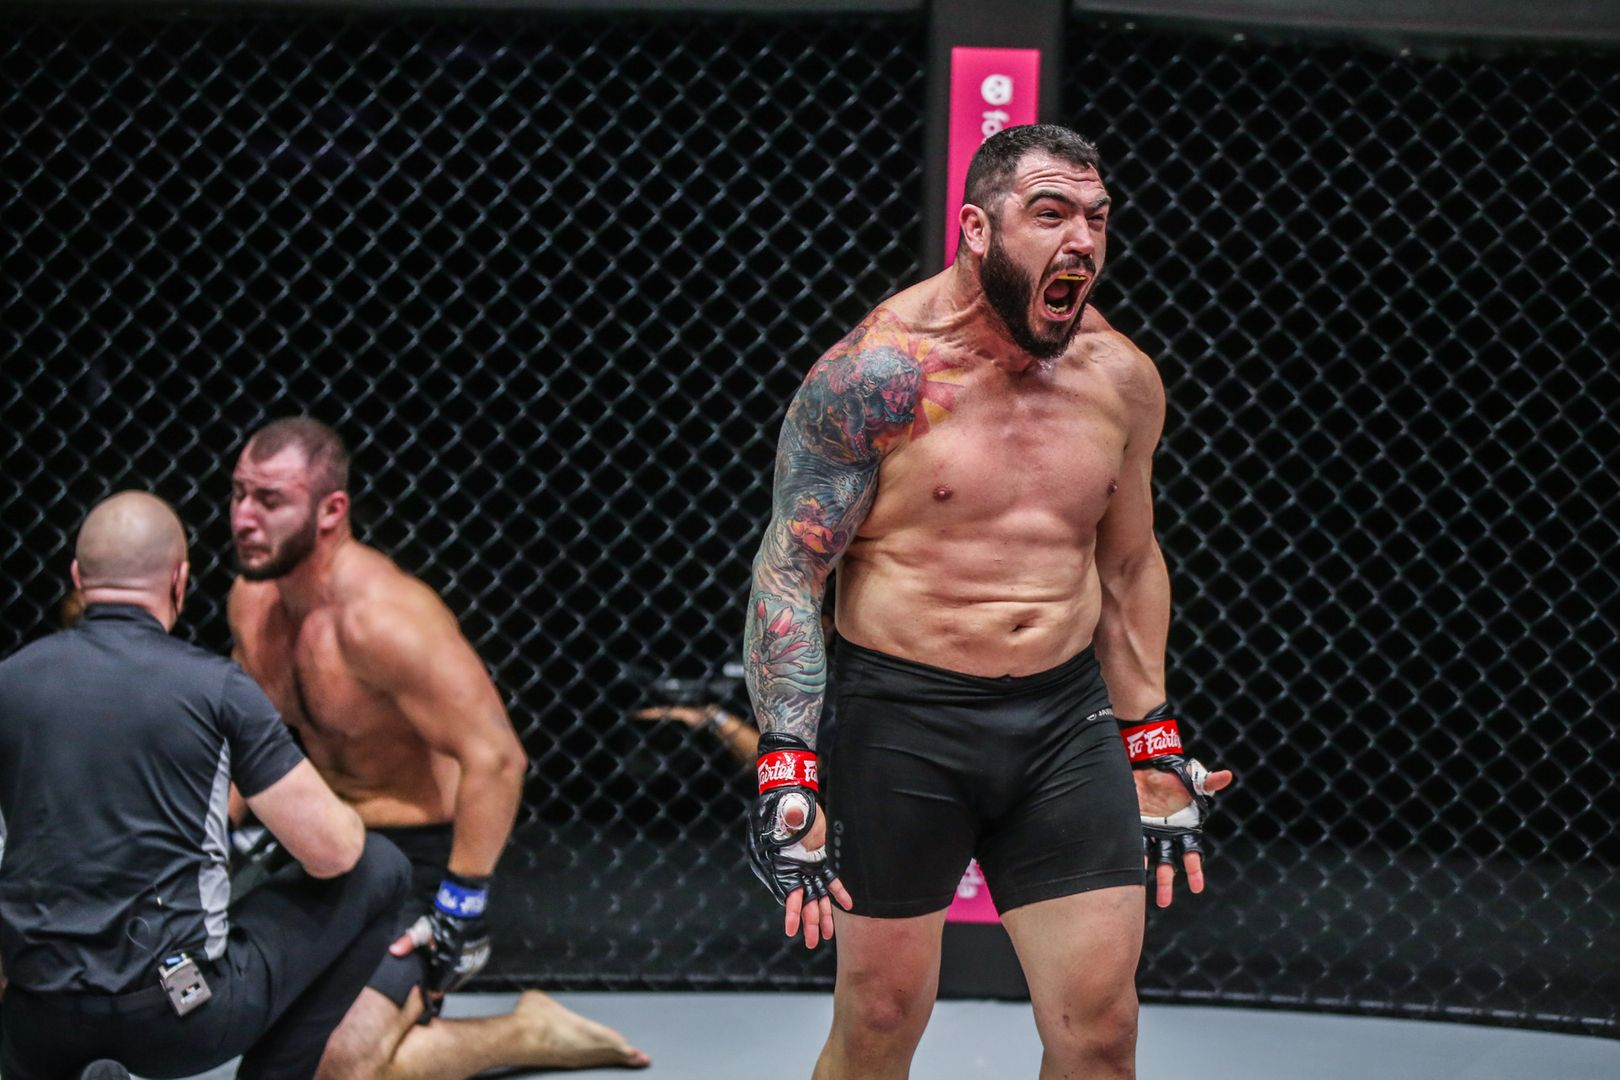 MMA heavyweight fighters Mauro Cerilli and Abdulbasir Vagabov compete at ONE: UNBREAKABLE II in January 2021